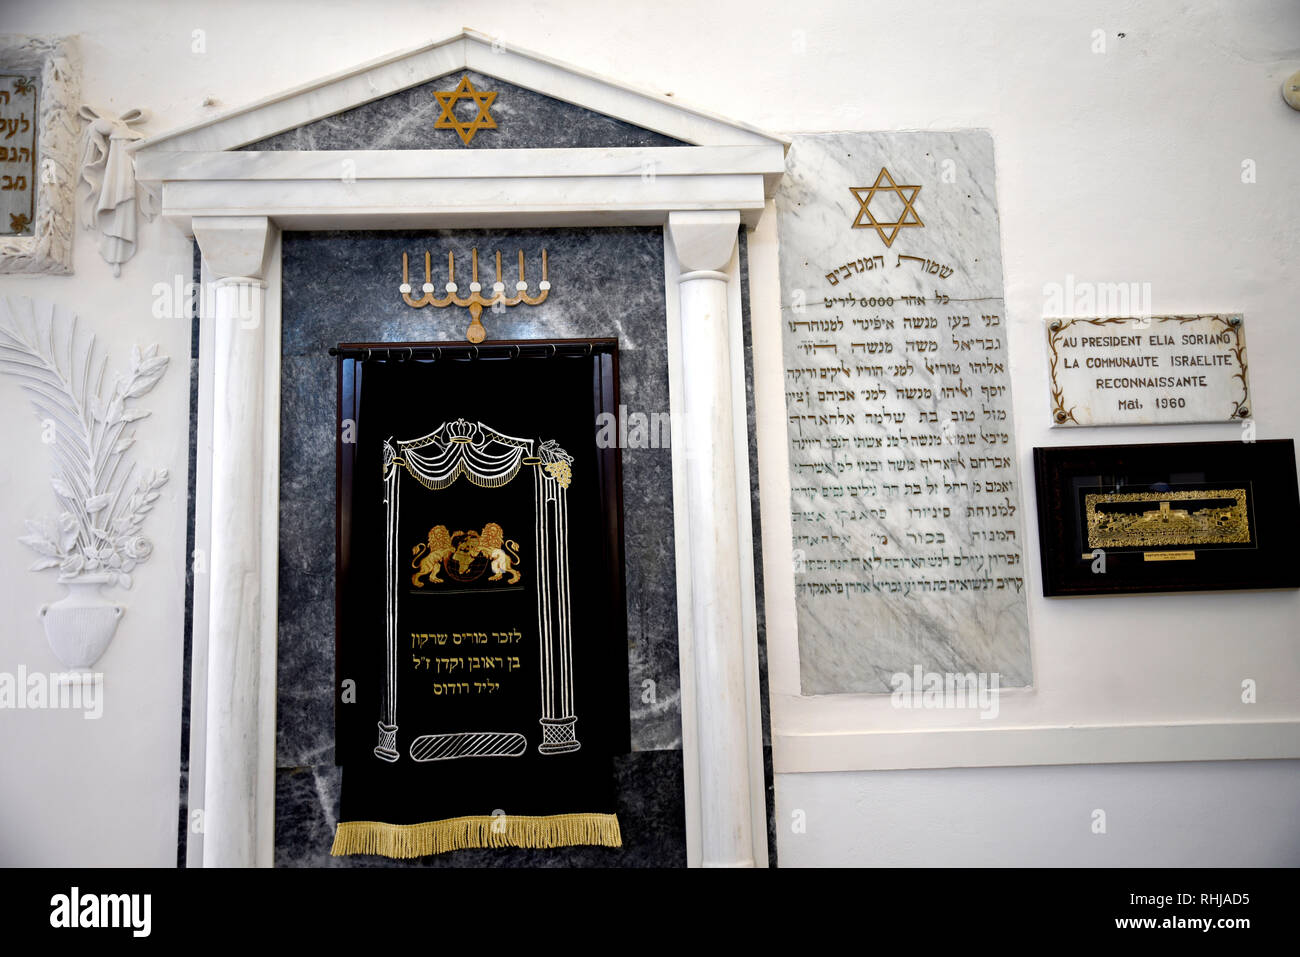 Kahal Shalom Synagogue on the island of Rhodes.In medieval times Sephardic Jews from Spain emigrated to Rhodes where they became part of the community - Stock Image